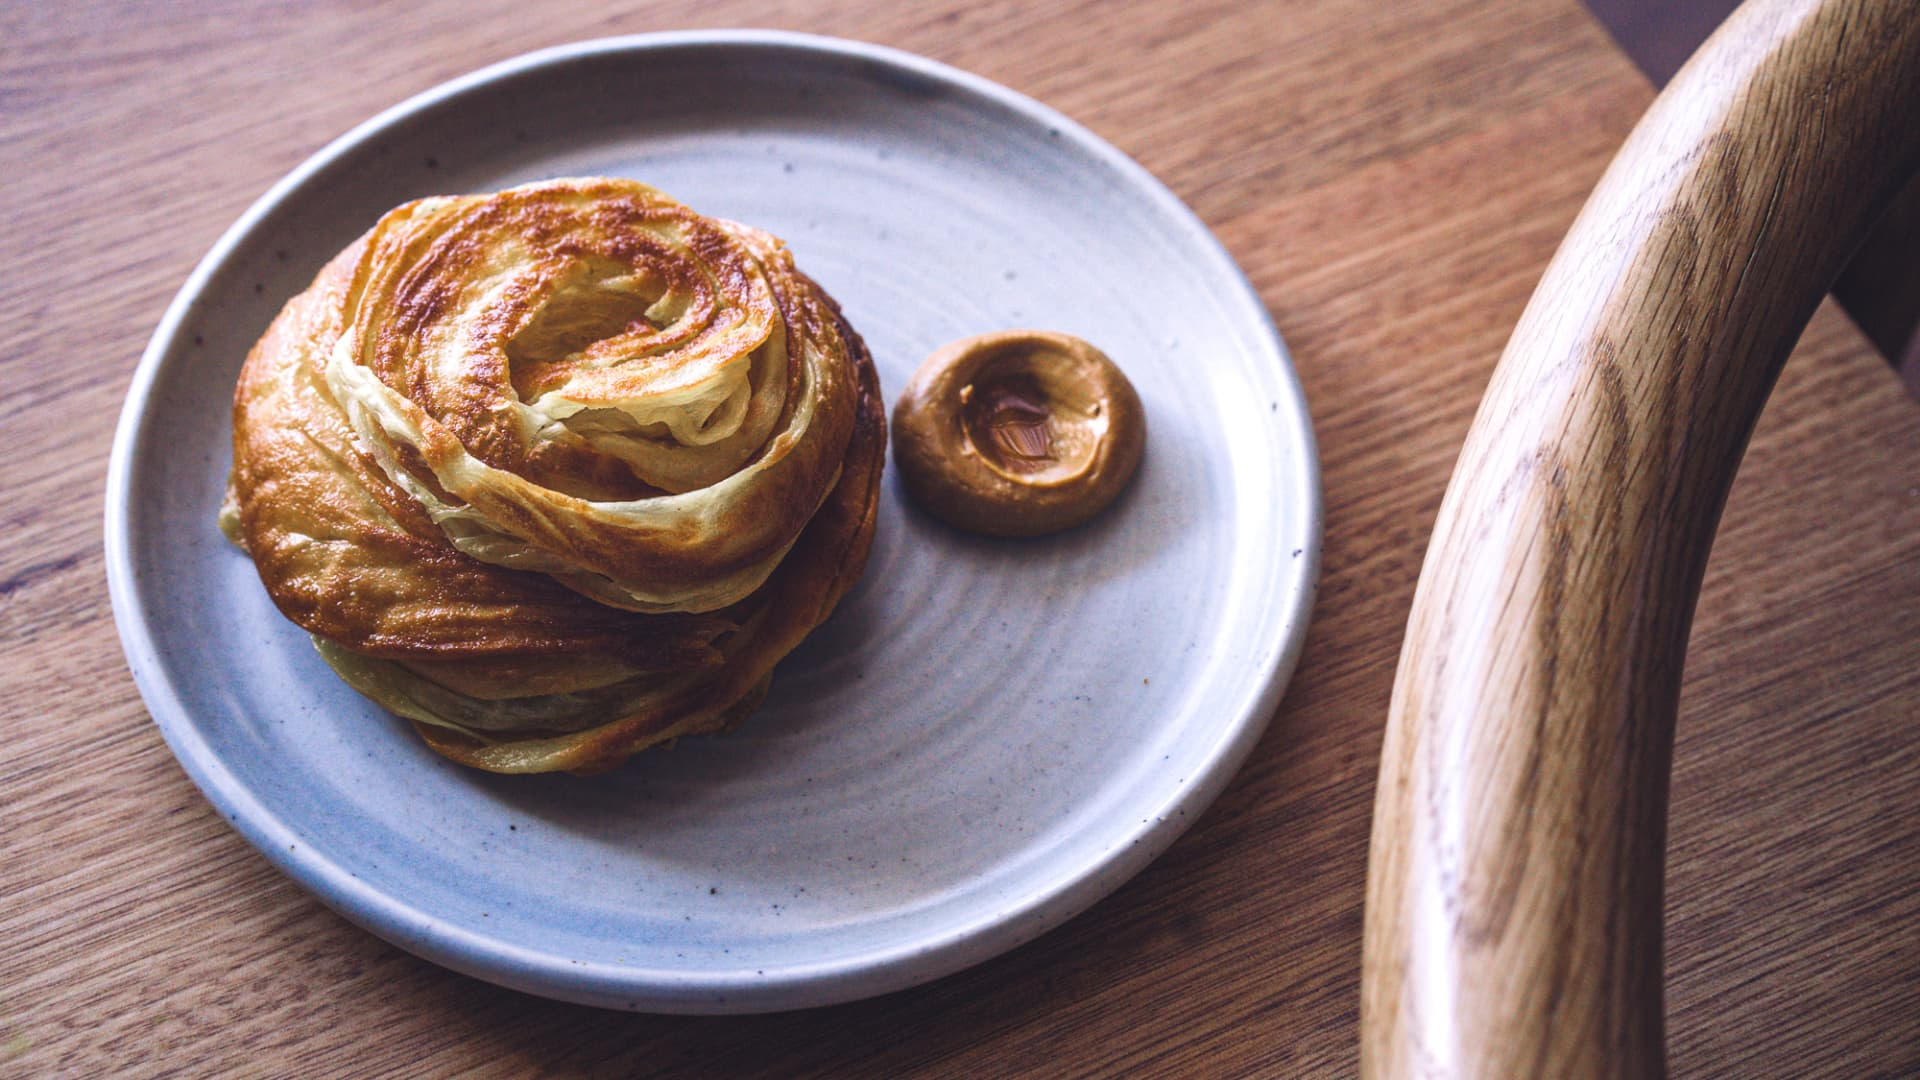 Sunda's buttery roti is served alongside a paste-like 'curry' laced with Vegemite.